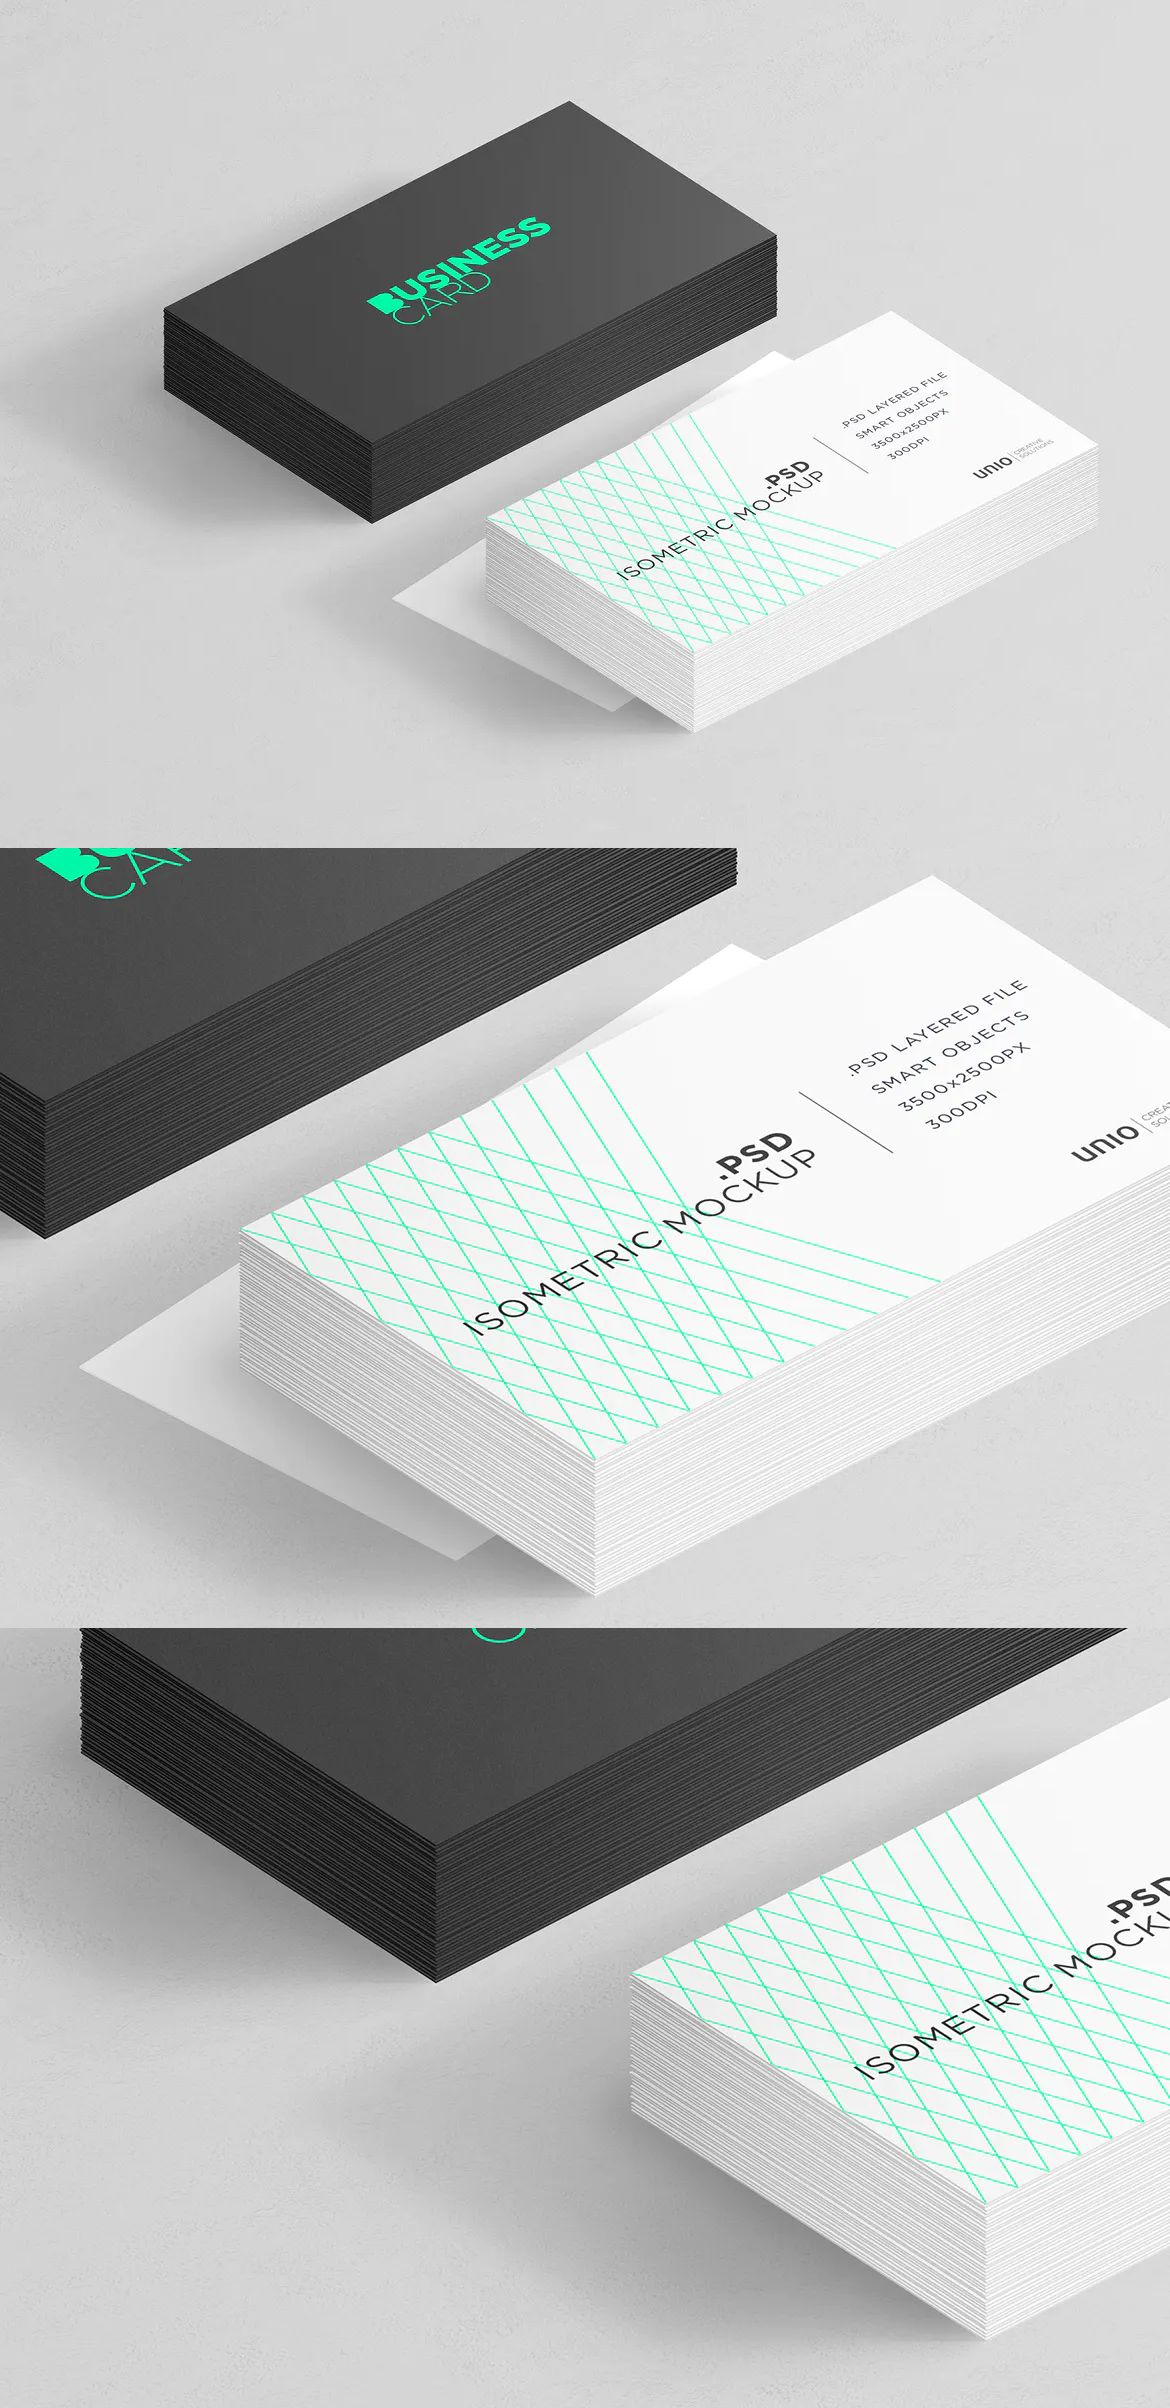 Download Isometric Business Card Mockup By Uniocs On Envato Elements Business Card Mock Up Business Cards Isometric